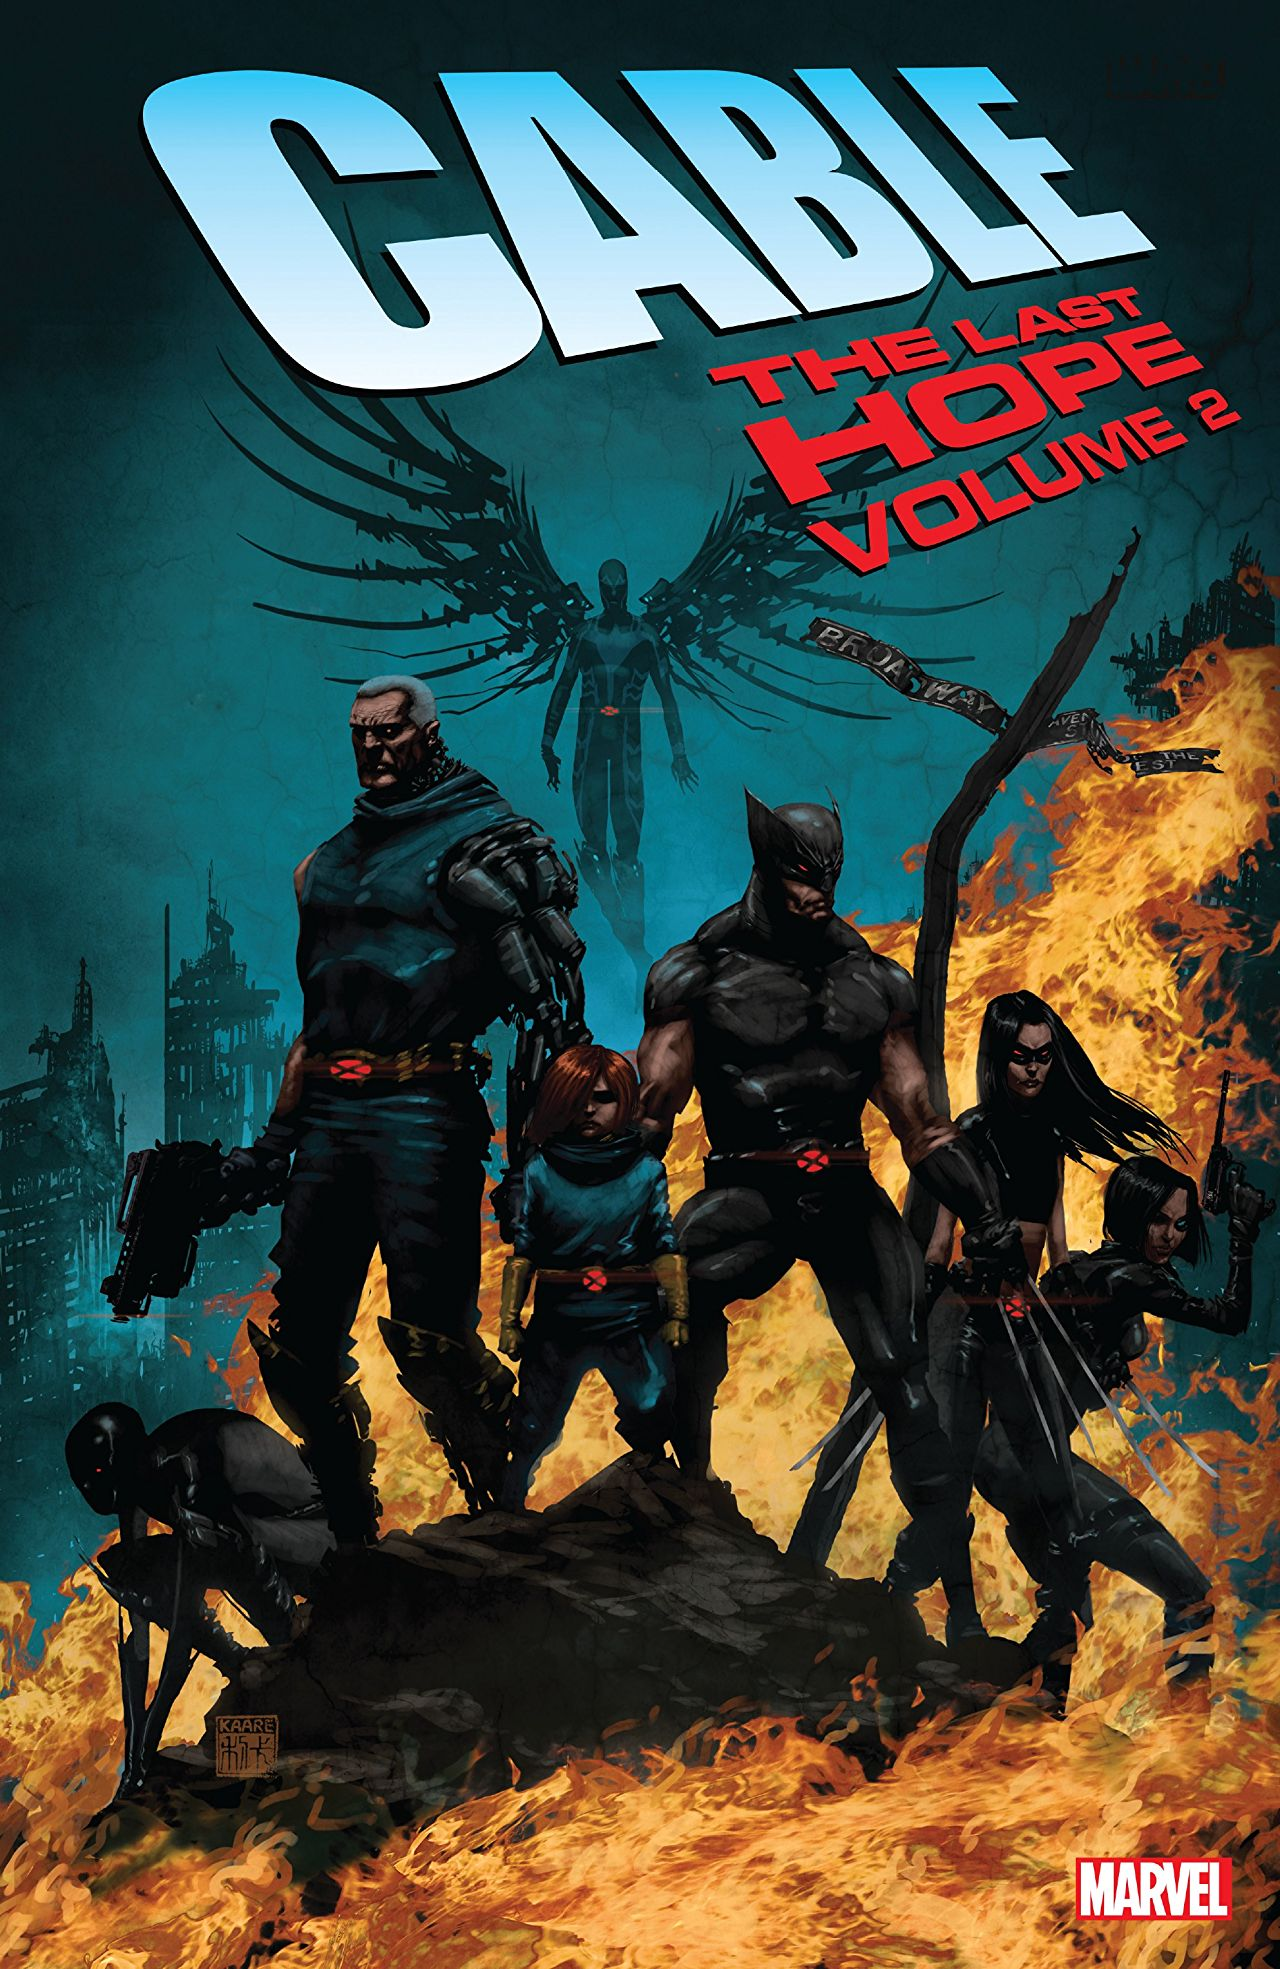 Cable: The Last Hope Vol. 2 Review: A wonderful continuation of Cable's finest story